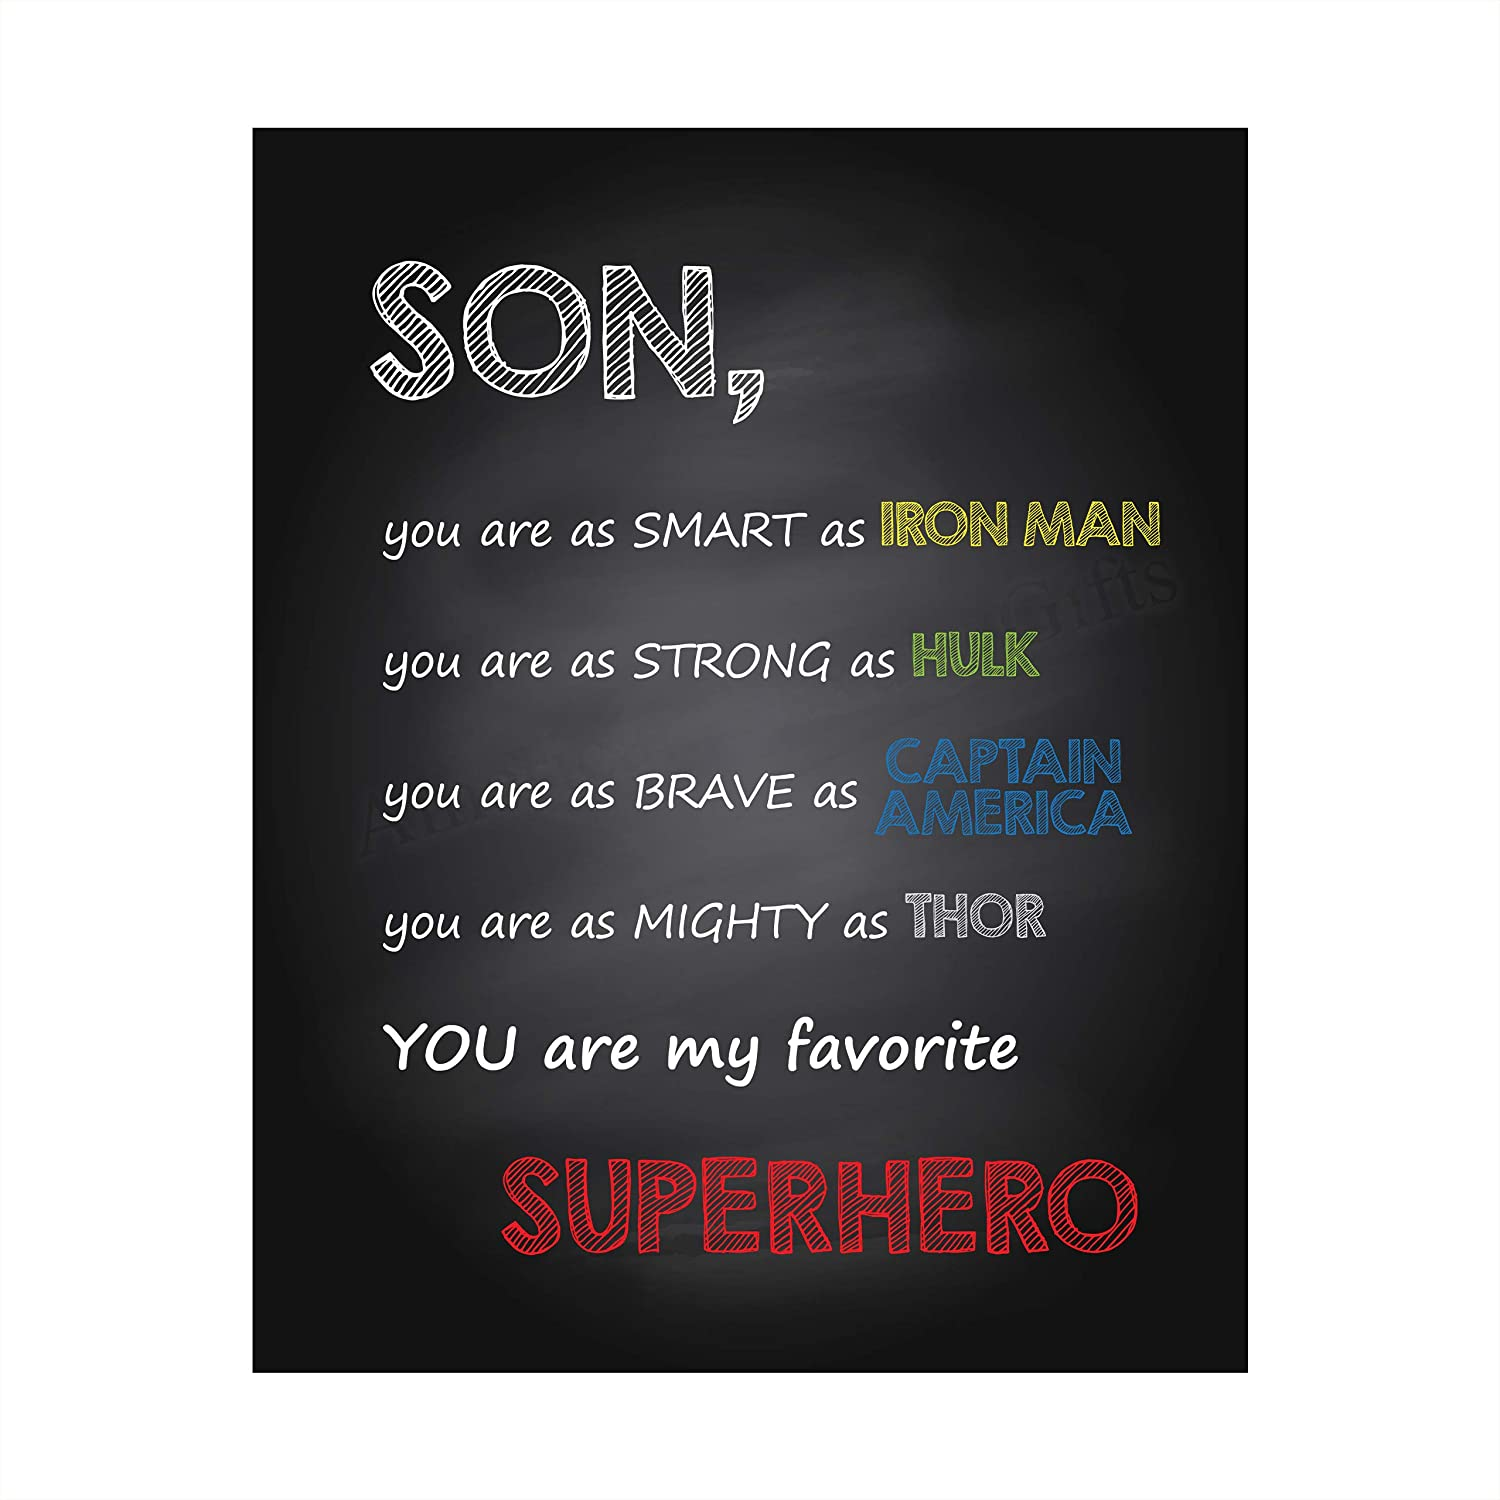 """Son-You Are My Favorite Superhero"" Inspirational Wall Art Sign -8 x 10"" Artistic Typographic Poster Print-Ready to Frame. Perfect Home-Kids Bedroom-Nursery Decor. Great Decoration for Marvel Fans!"